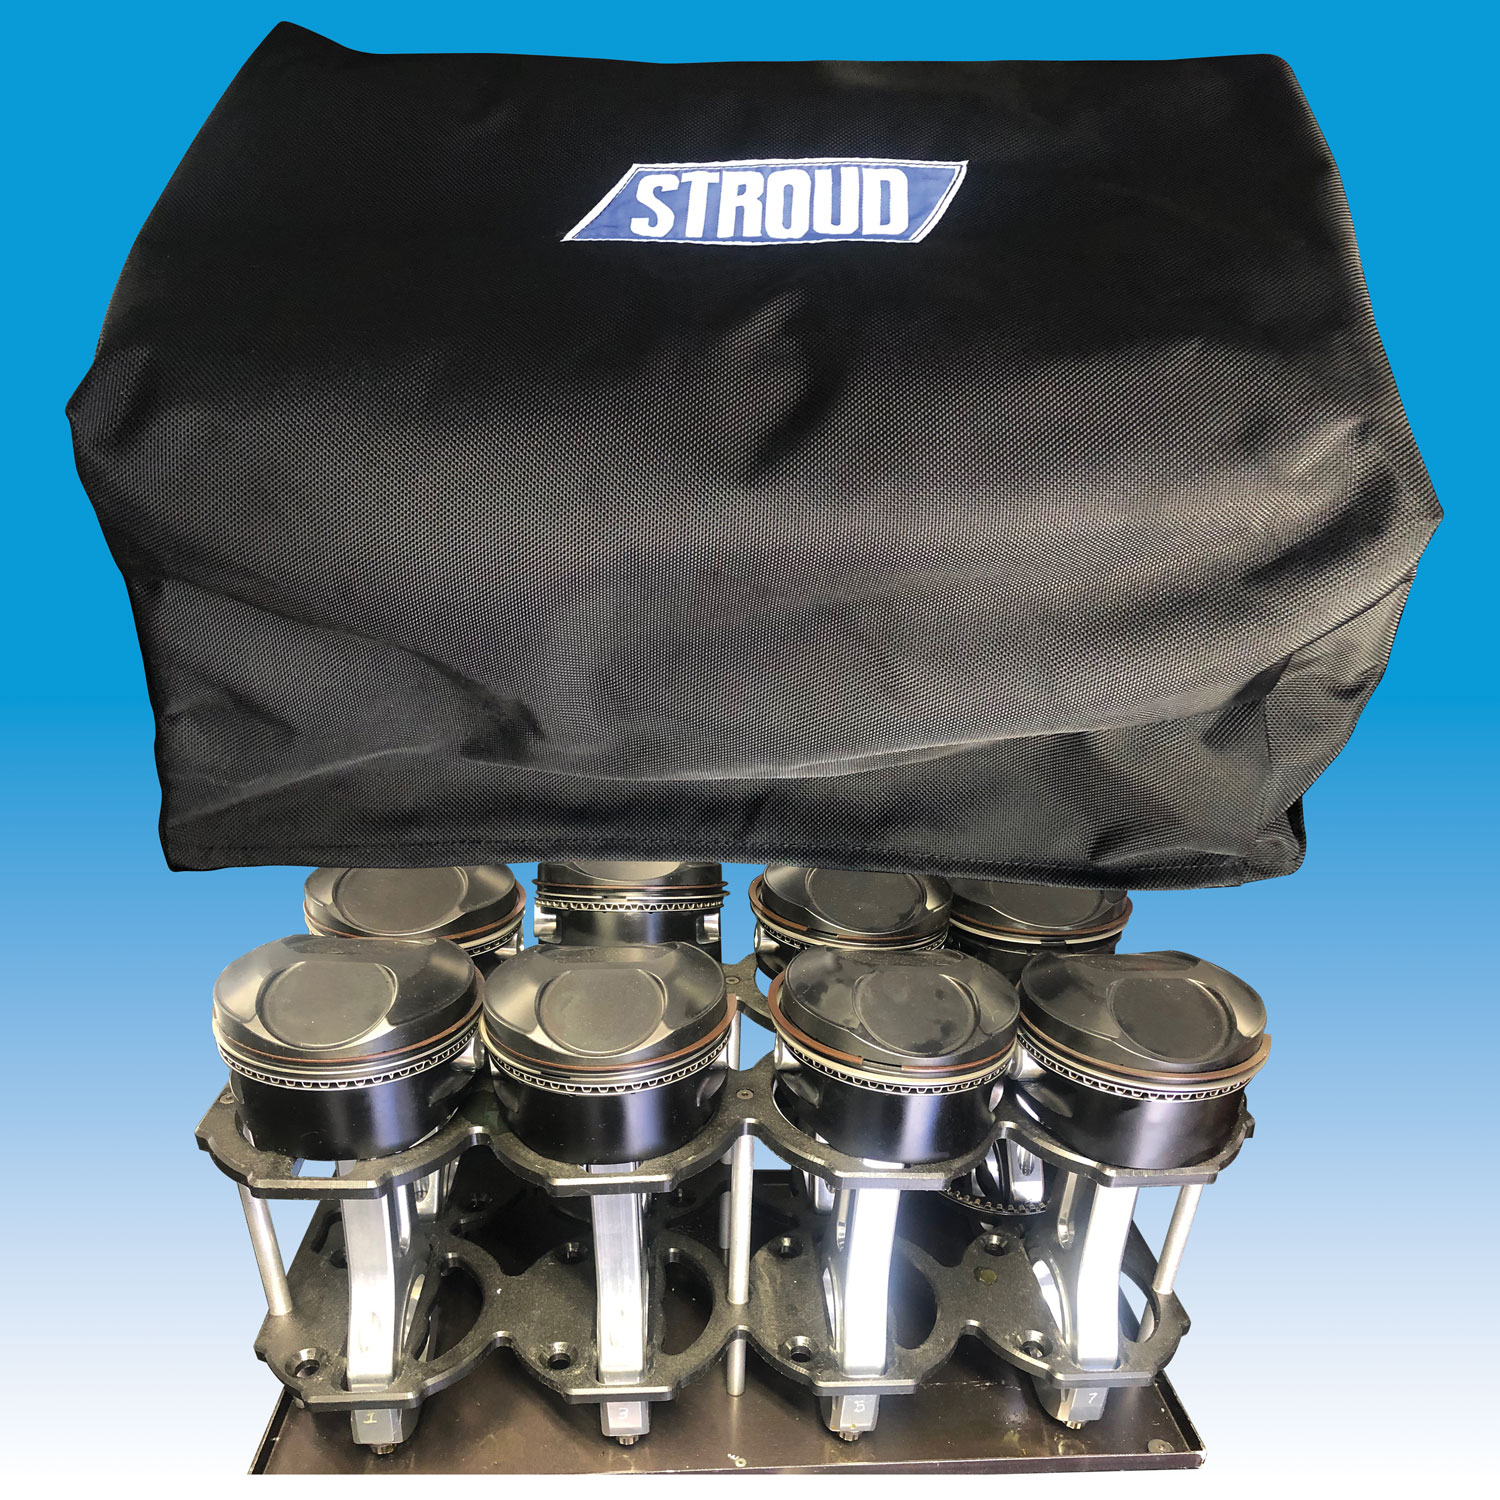 Pistons Cover   Keep pistons free of dirt and debris at the track or shop.  Part #Piston Cover — $38